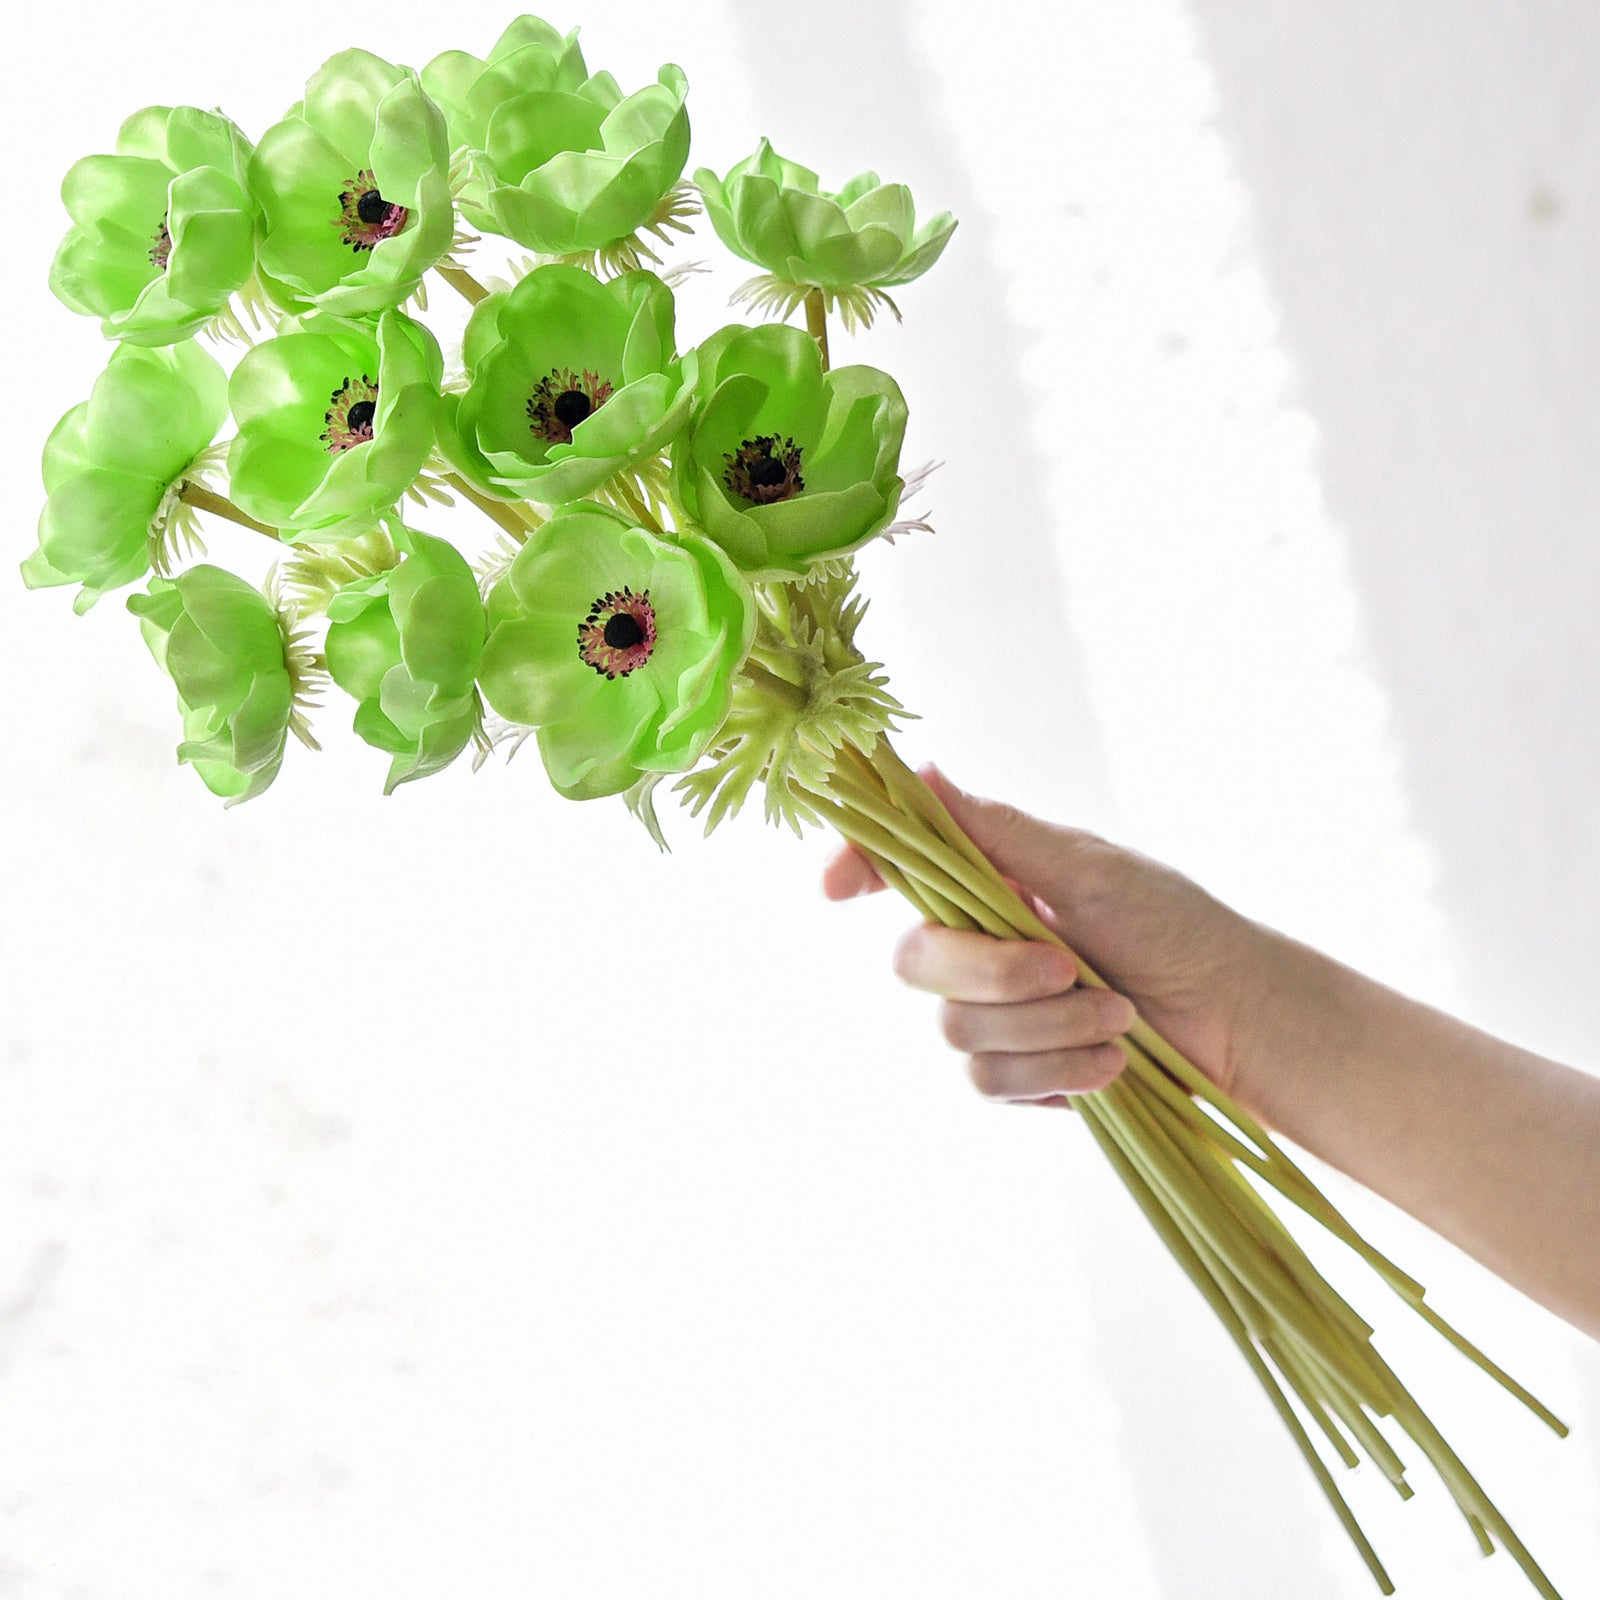 12 Long Stems of 'Real Touch' Artificial (Green) Anemone Flowers, Wedding Bouquet Flower Arrangement, 45cm (17.7 inches)